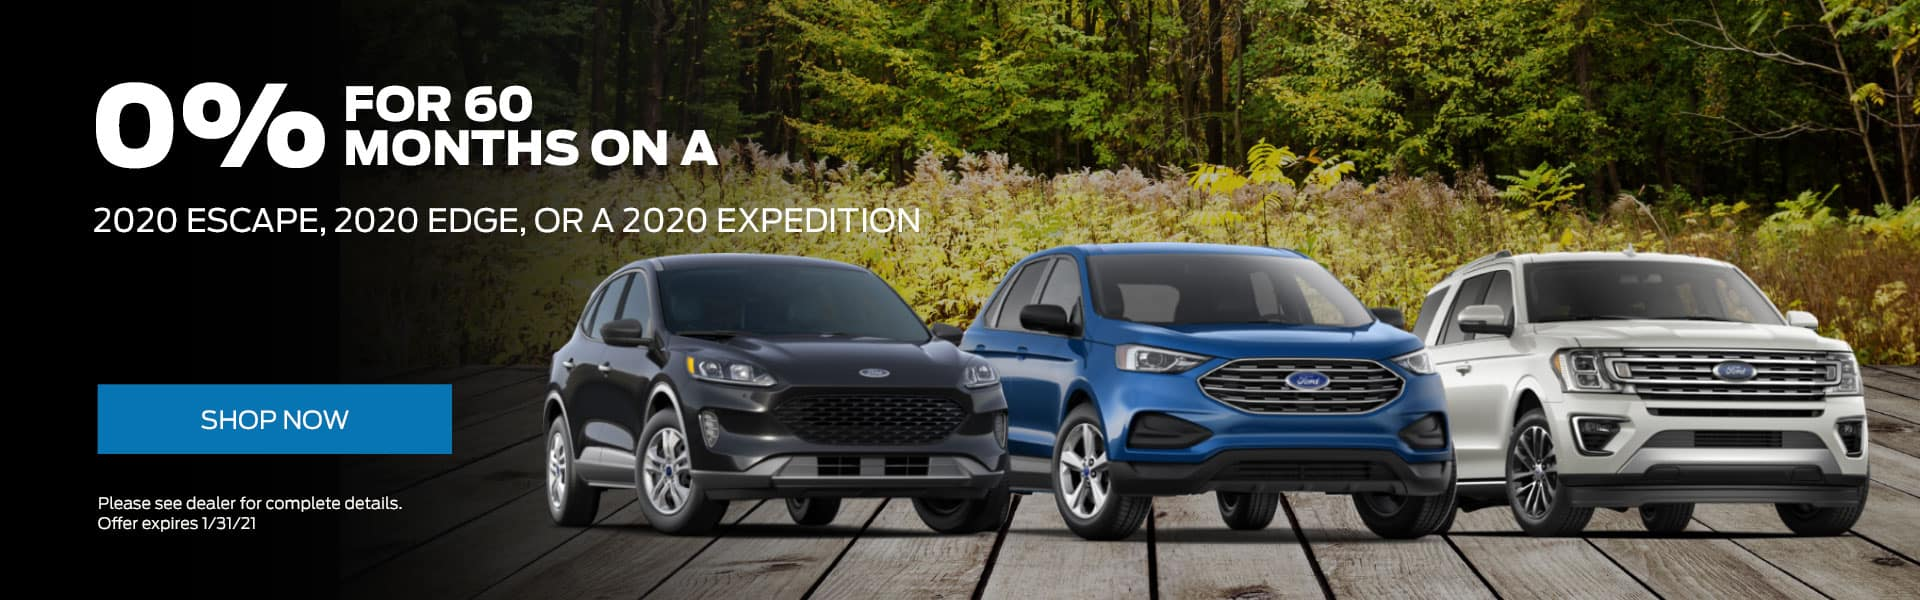 2020 Escape, 2020 Edge, or a 2020 Expedition